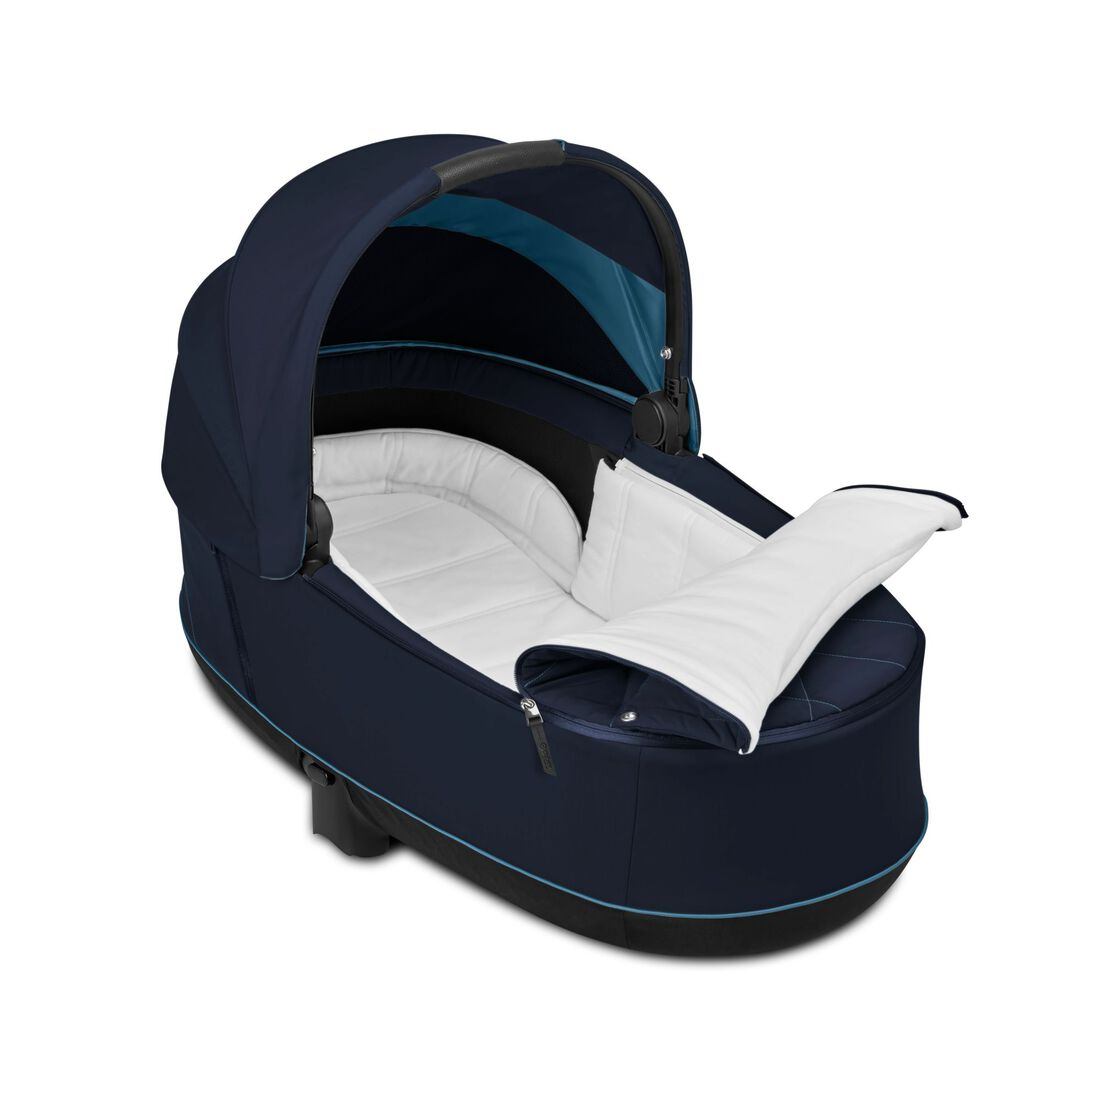 CYBEX Priam Lux Carry Cot - Nautical Blue in Nautical Blue large image number 3